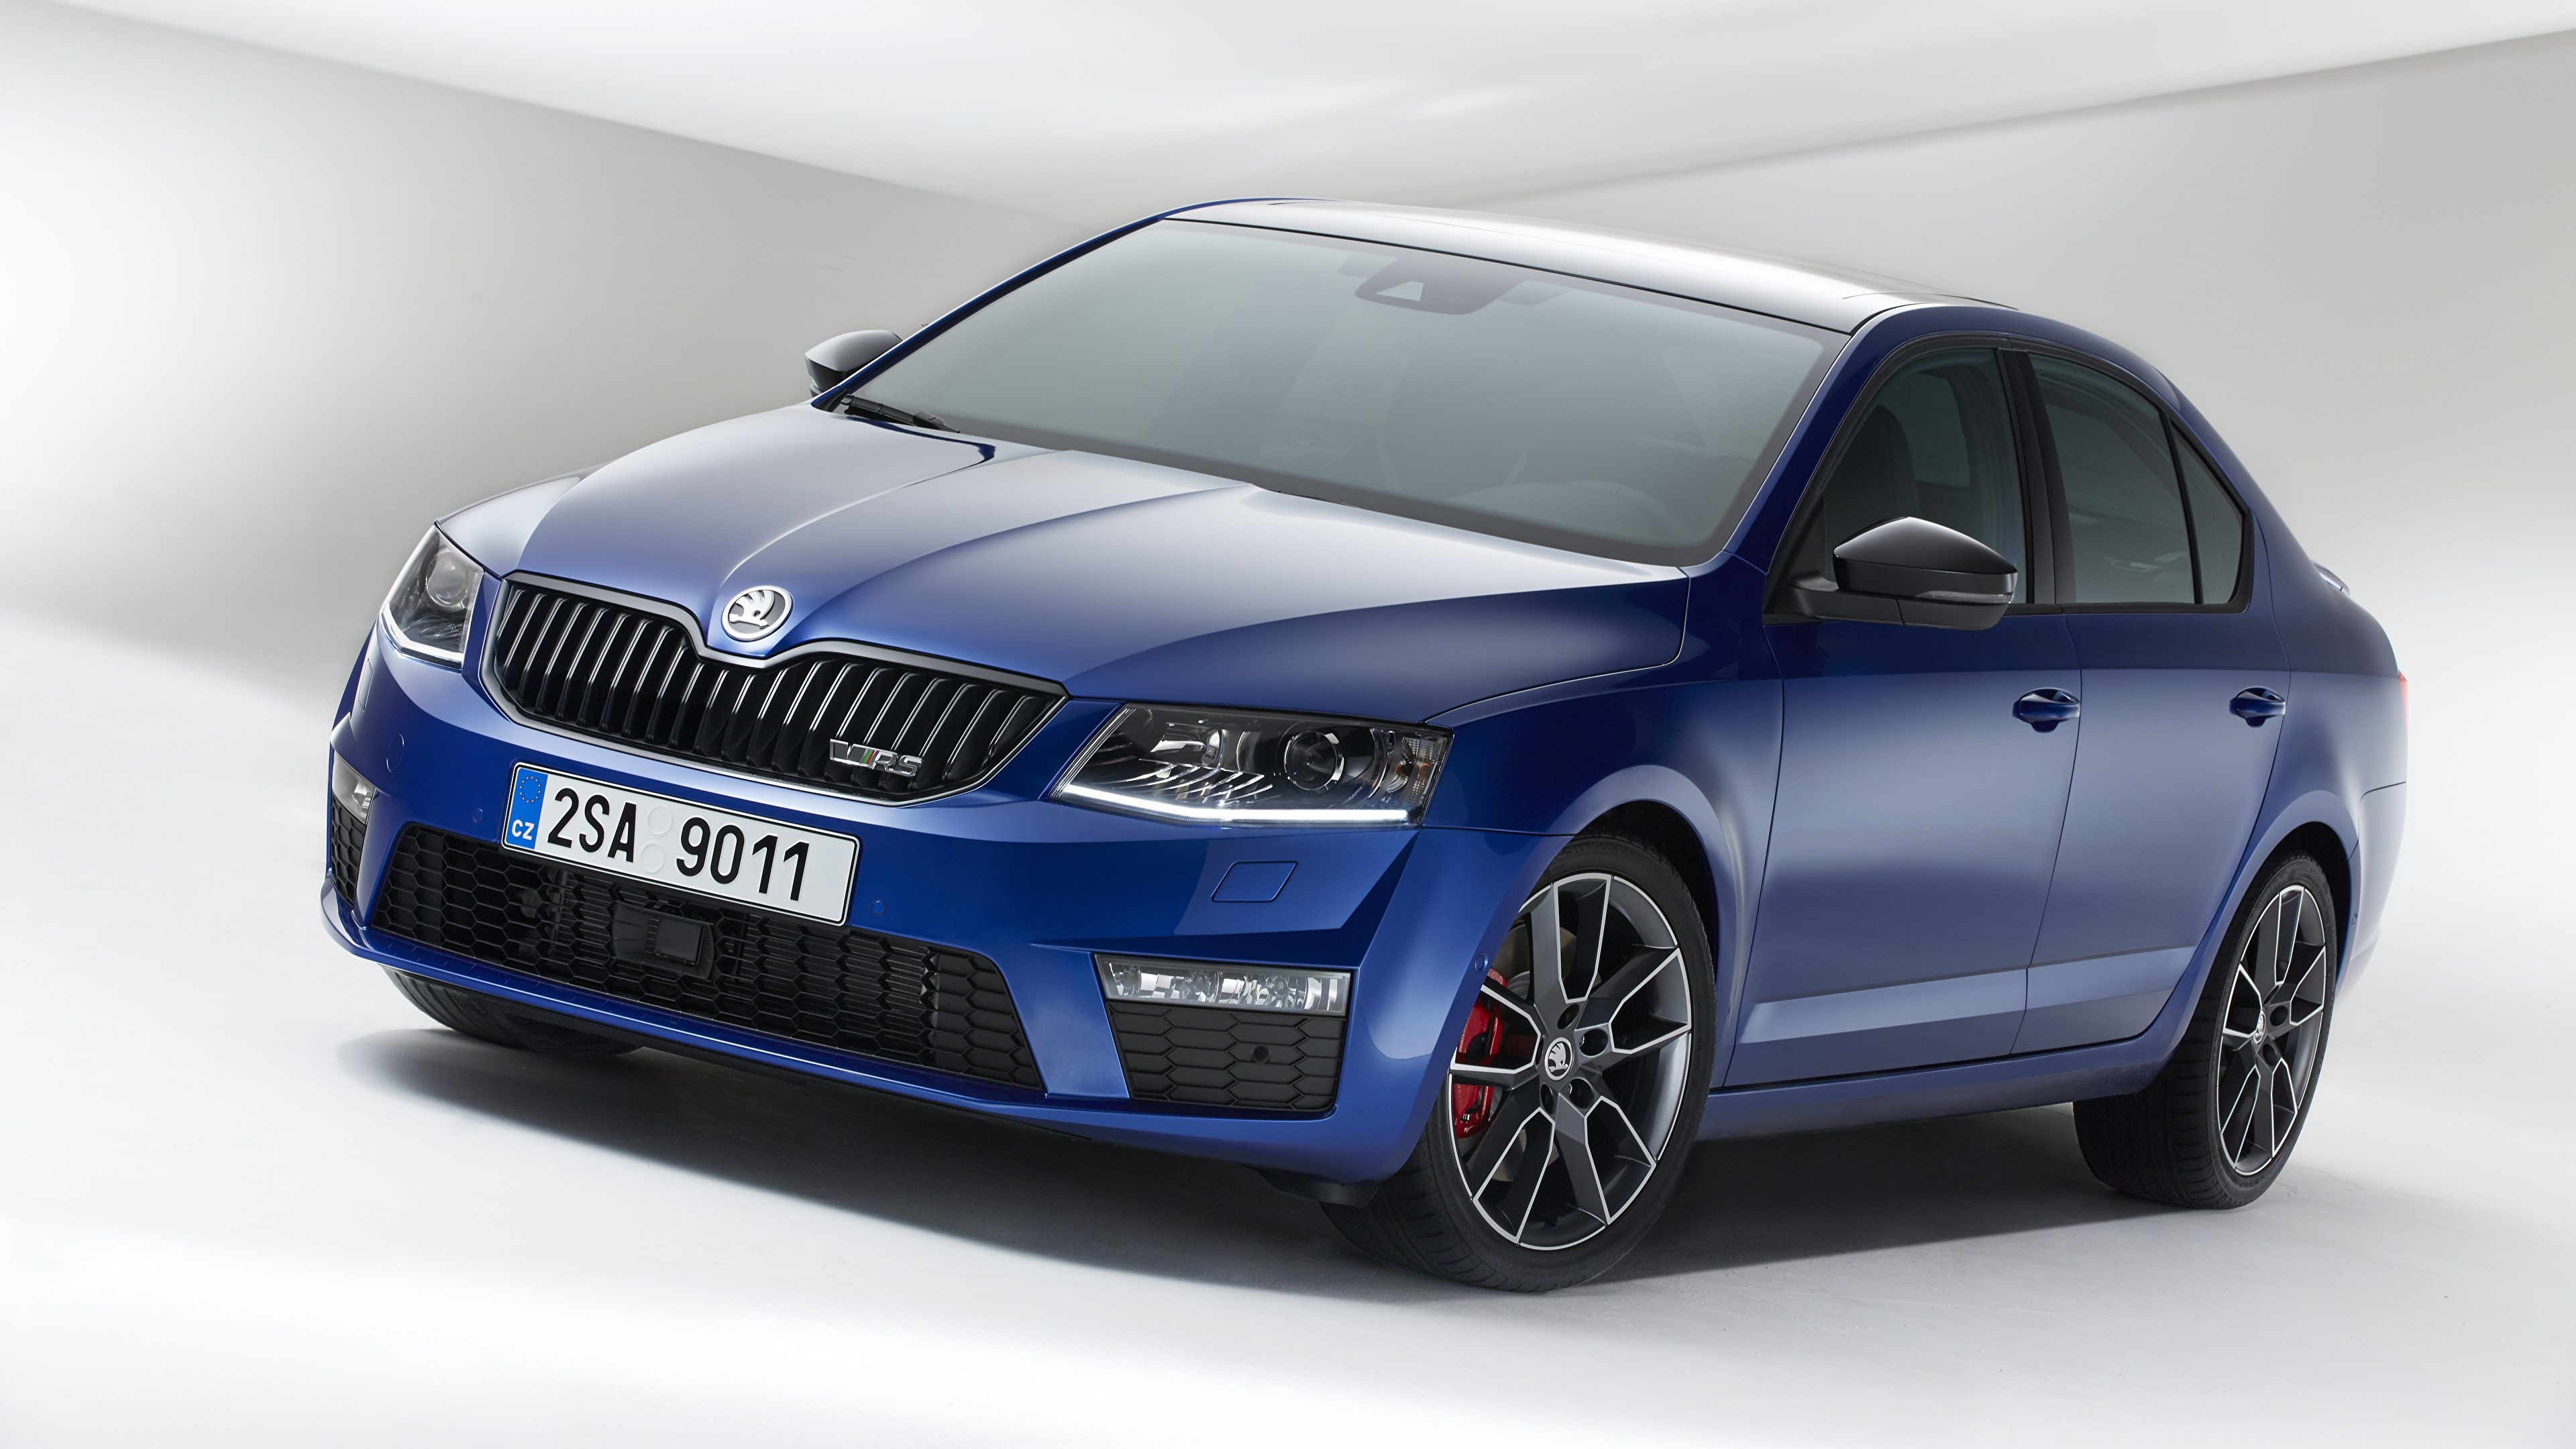 Picture Skoda Octavia Rs Blue Cars 3840x2160